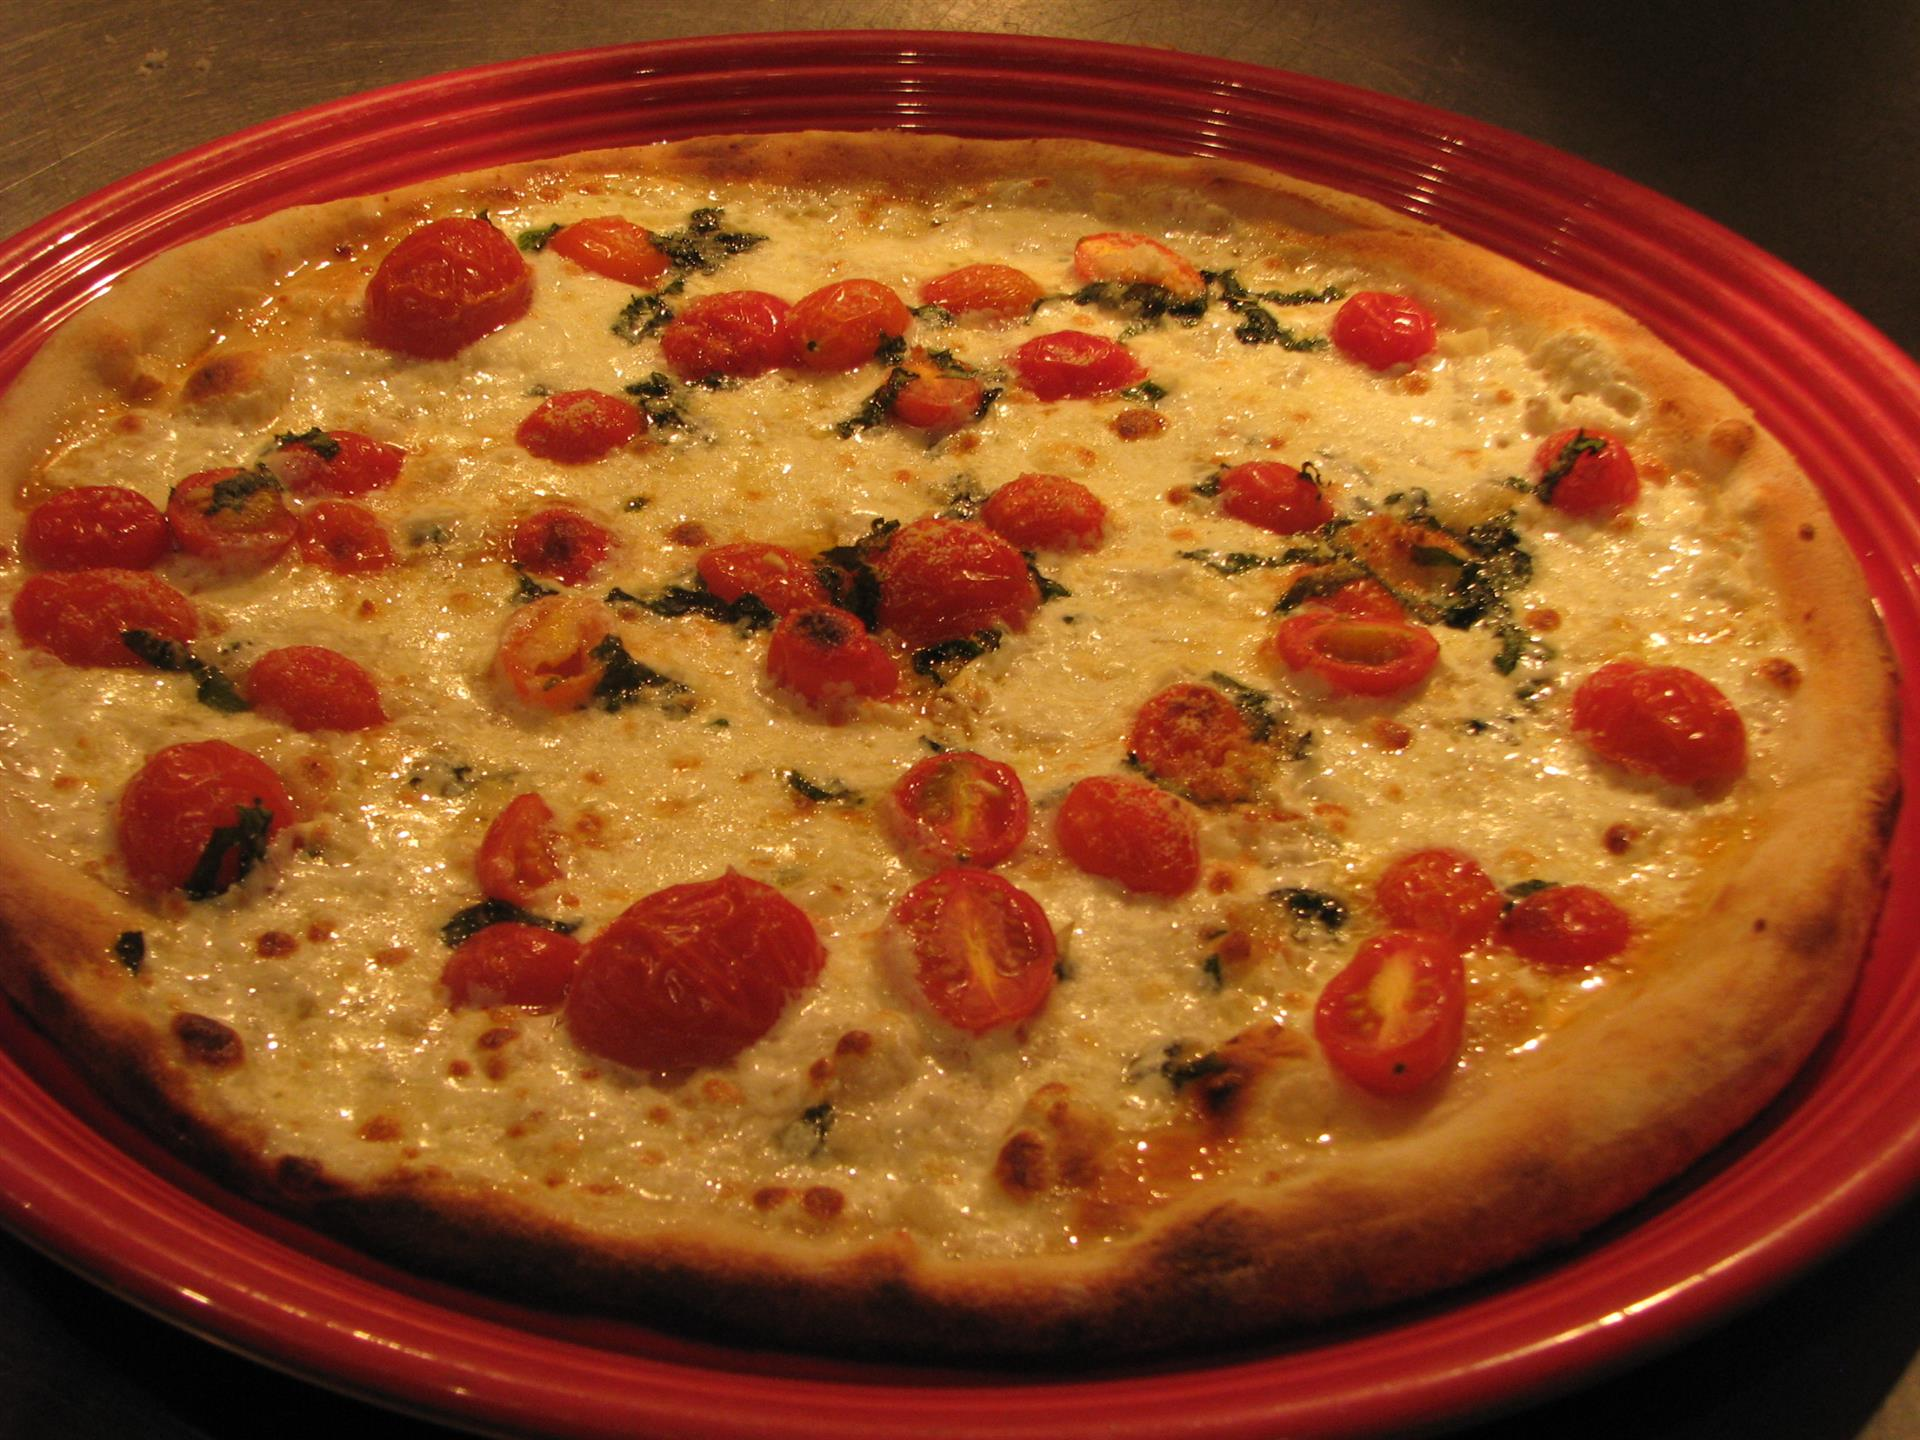 cheese pizza topped with tomatoes